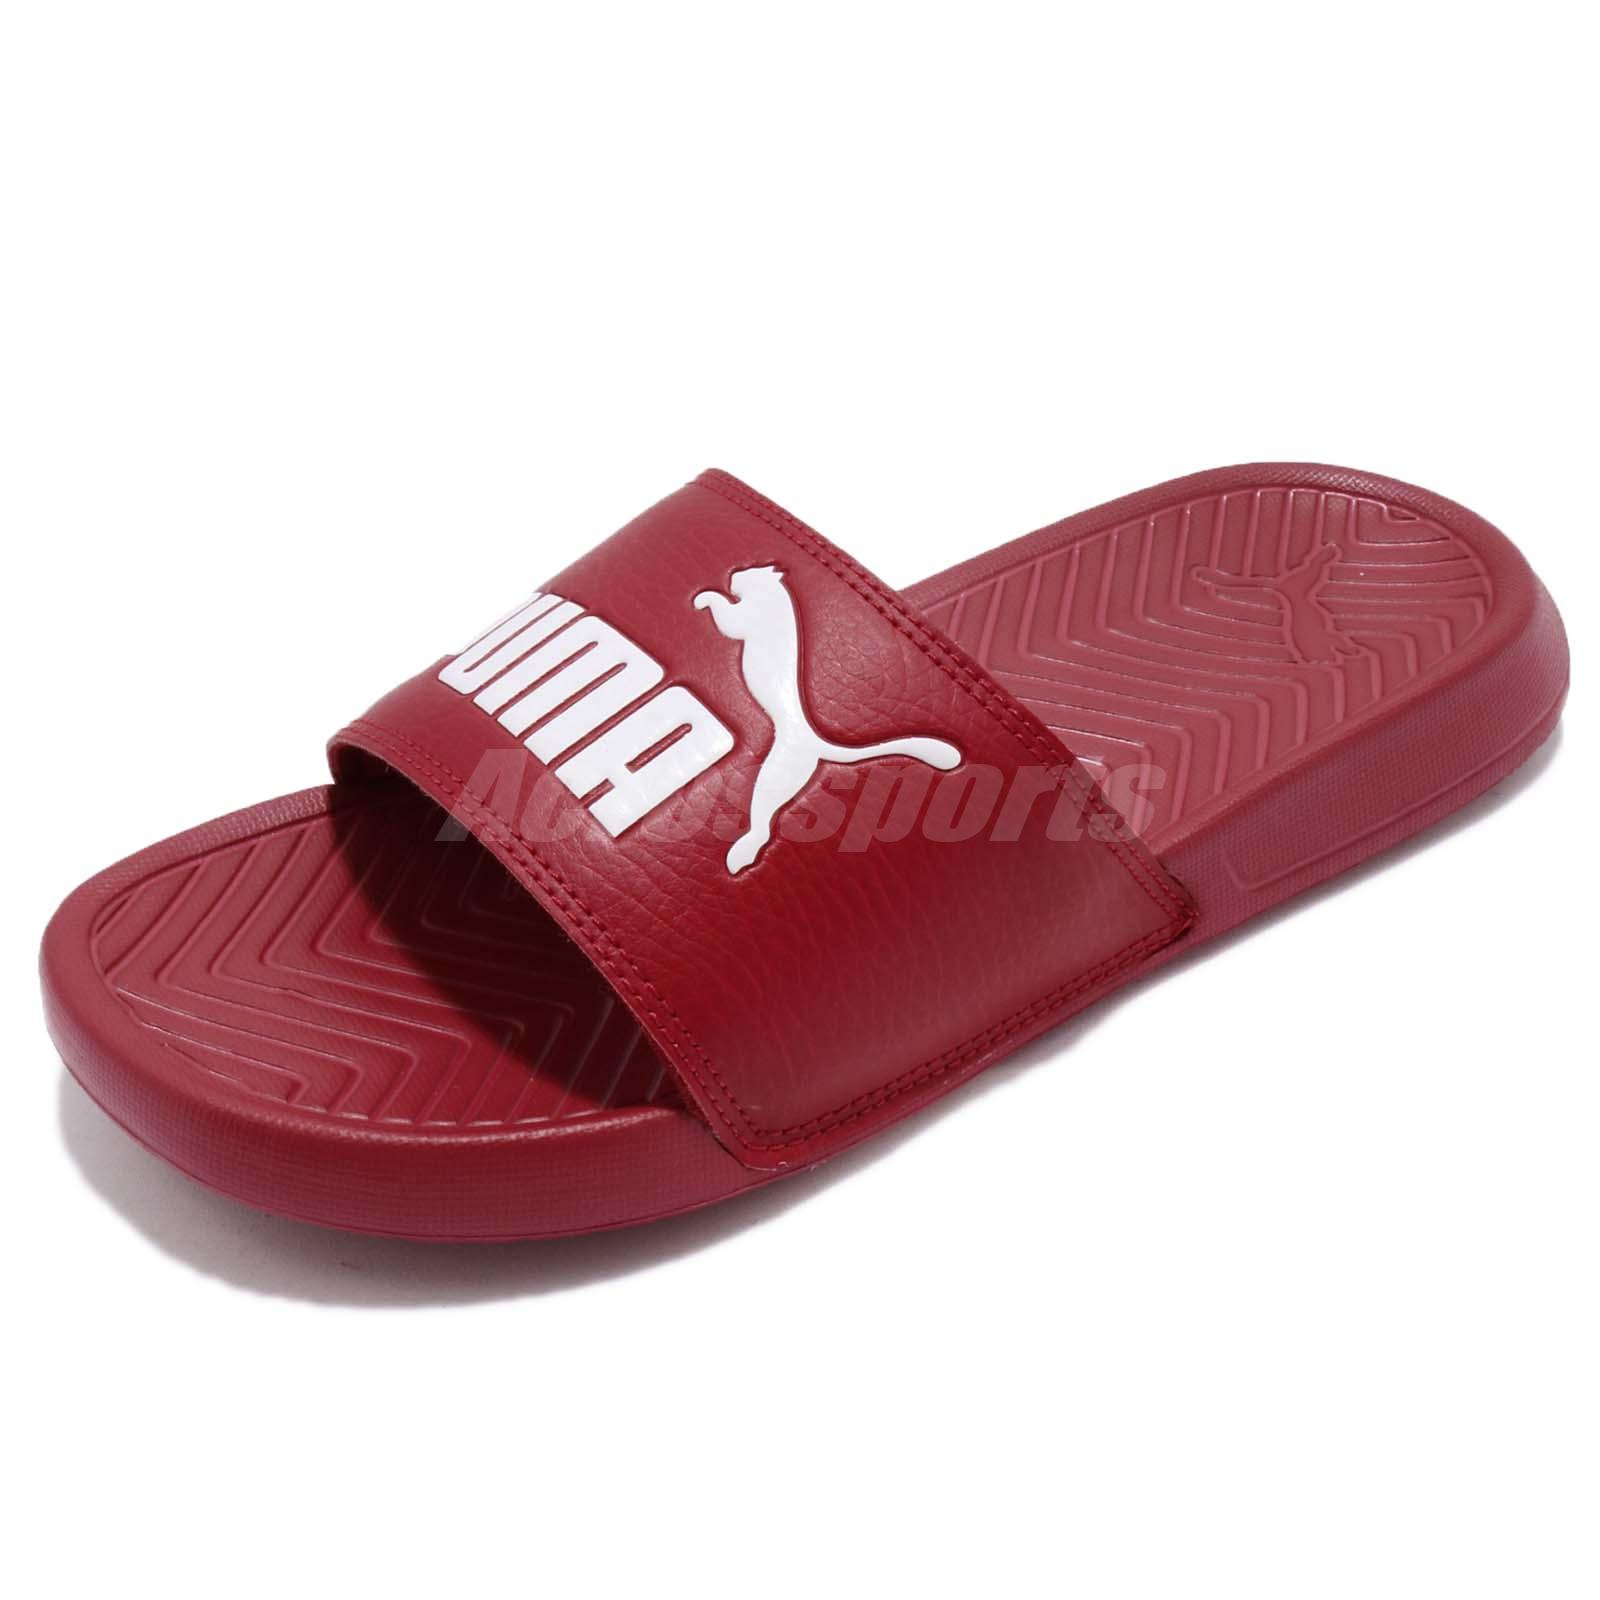 5b68e00ef64c Details about Puma Popcat Red White Men Women Sandal Slippers Slides  360265-22